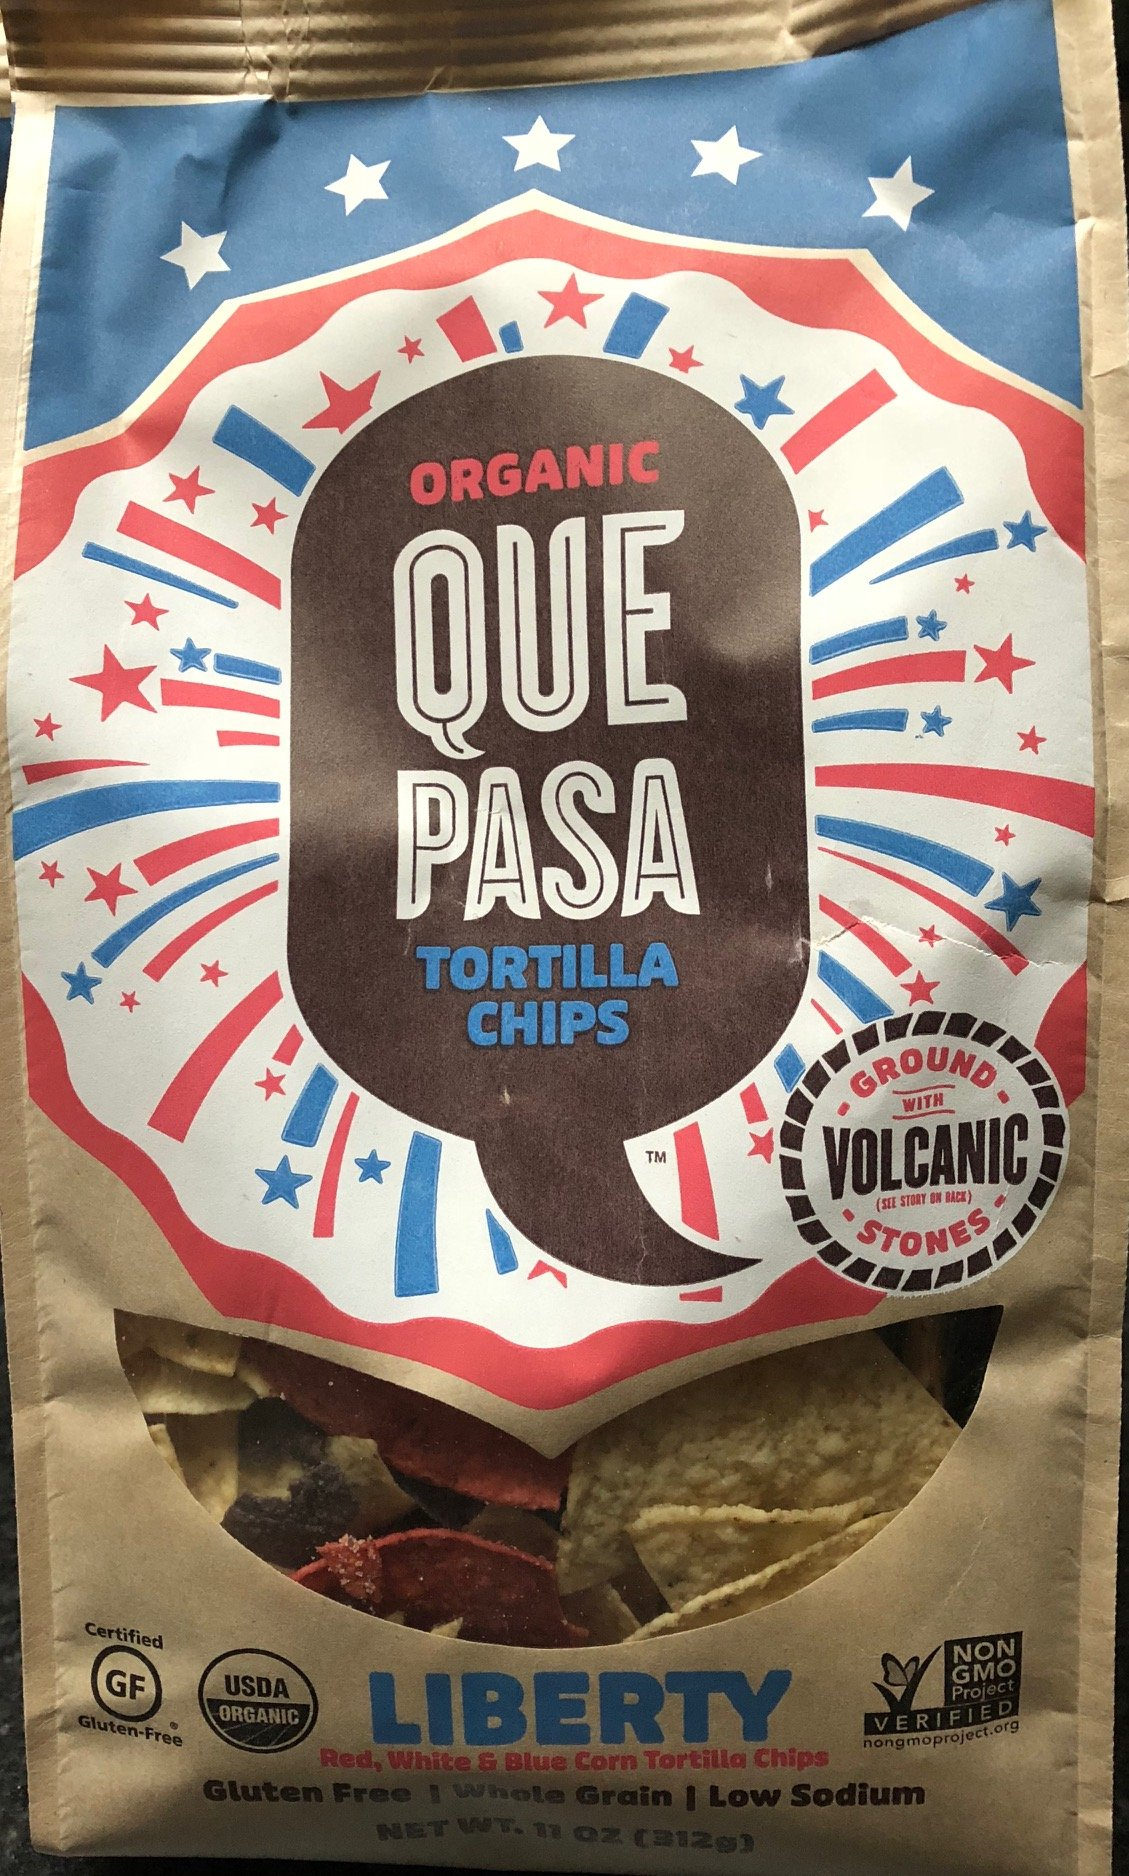 Que Pasa Tortilla Chips,''Liberty'' Edition, Red, White, and Blue Chips, 11 oz bag